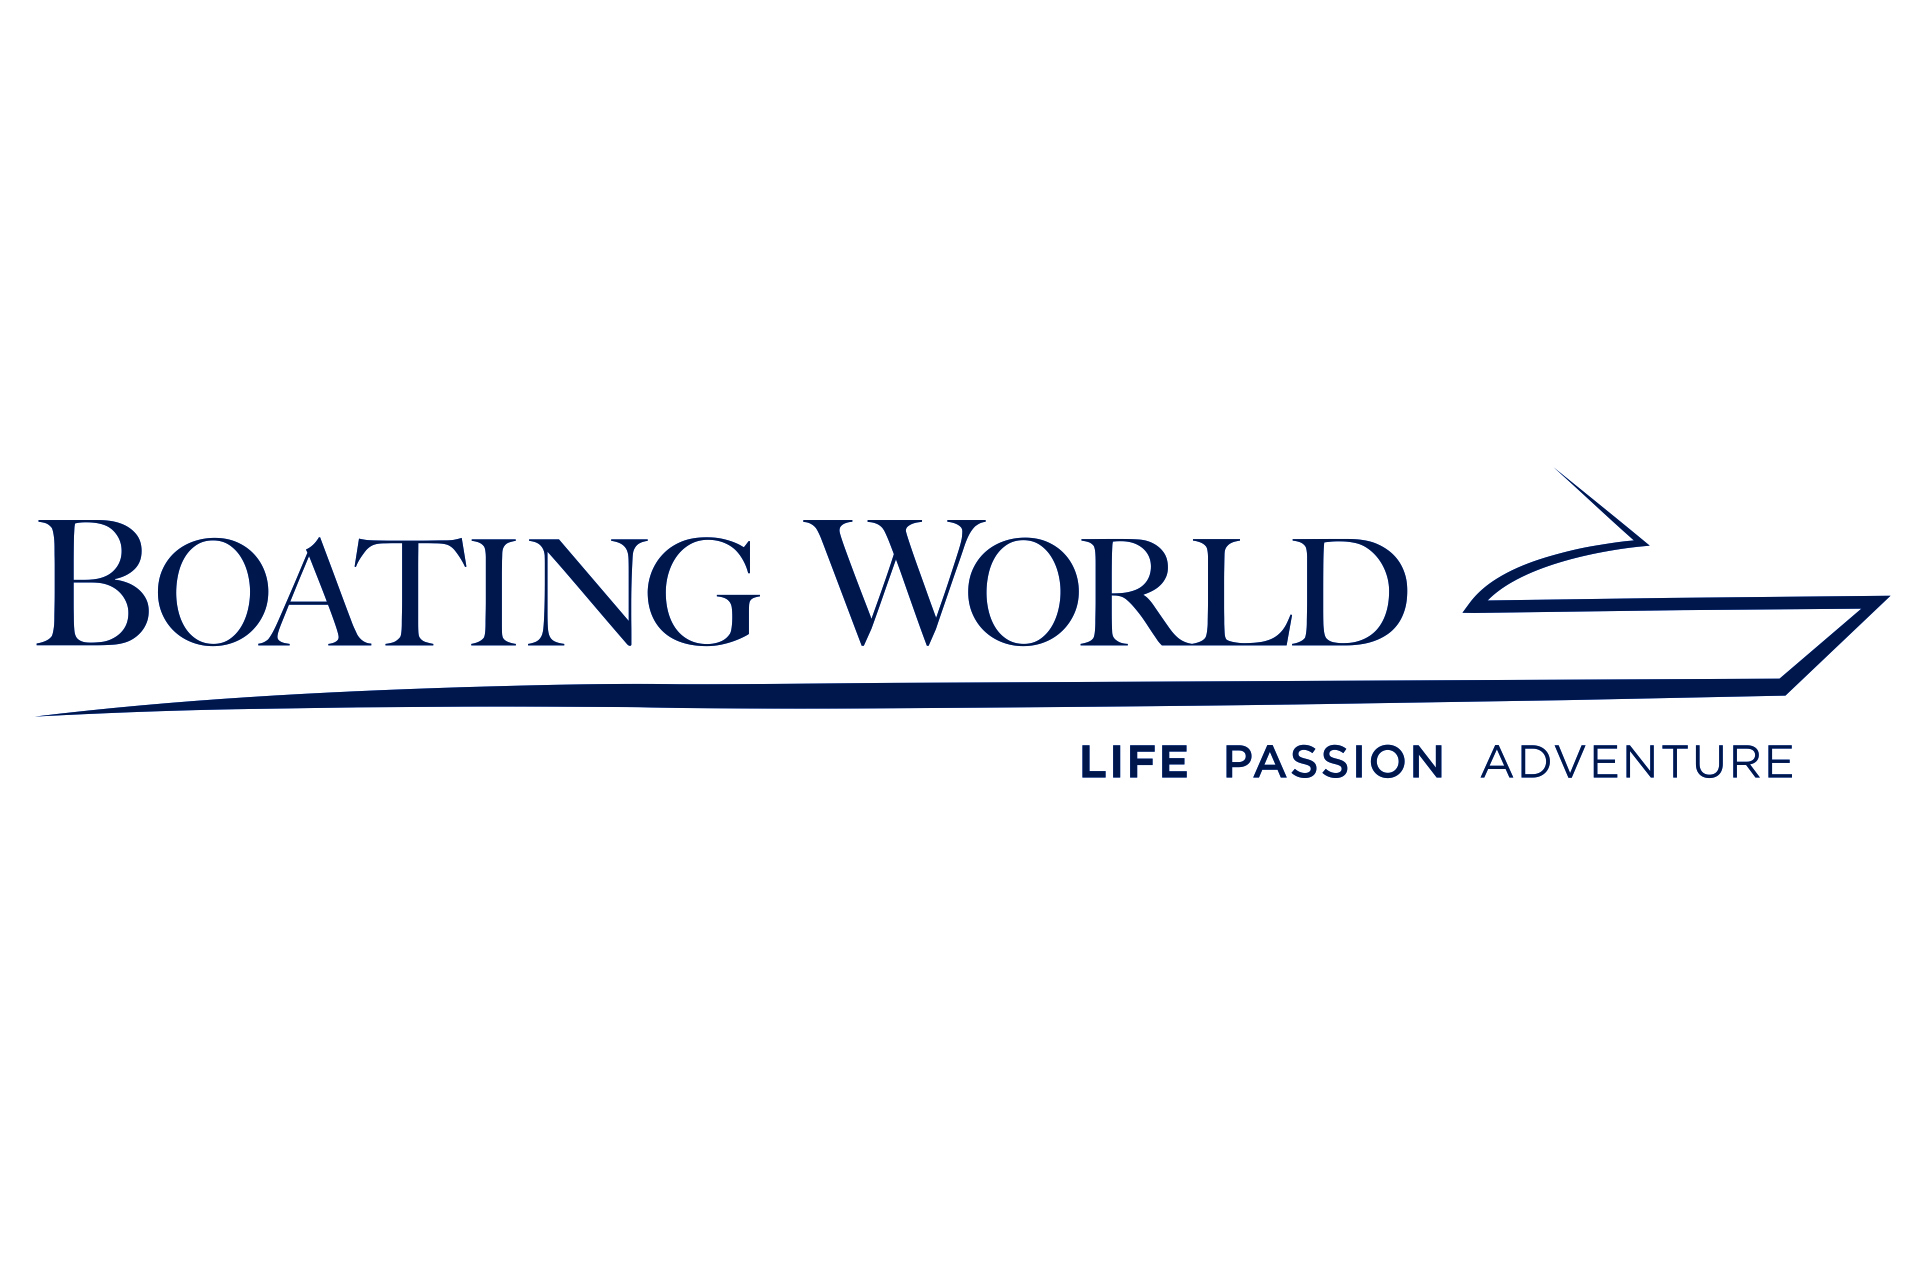 Boating World Logo 4x6